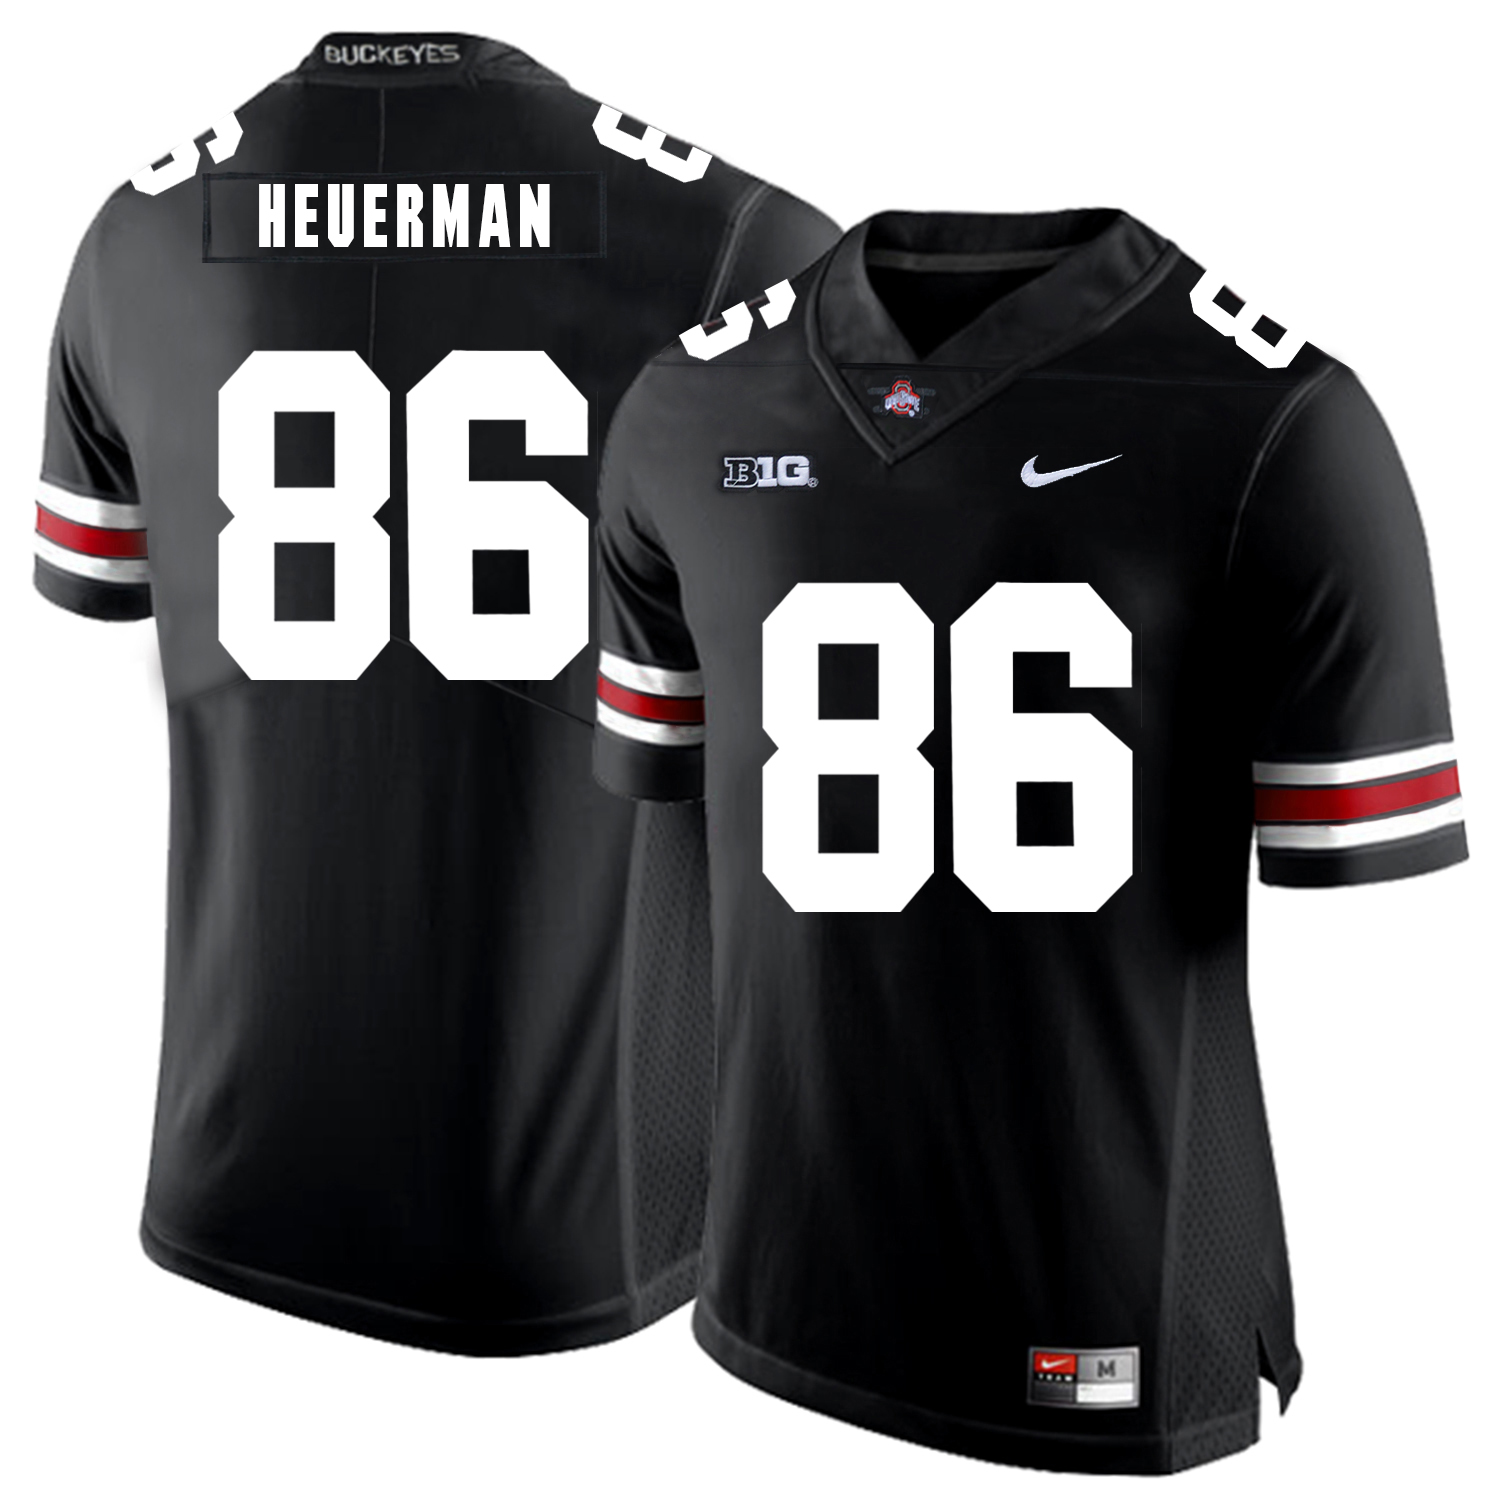 Ohio State Buckeyes 86 Jeff Heuerman Black Nike College Football Jersey